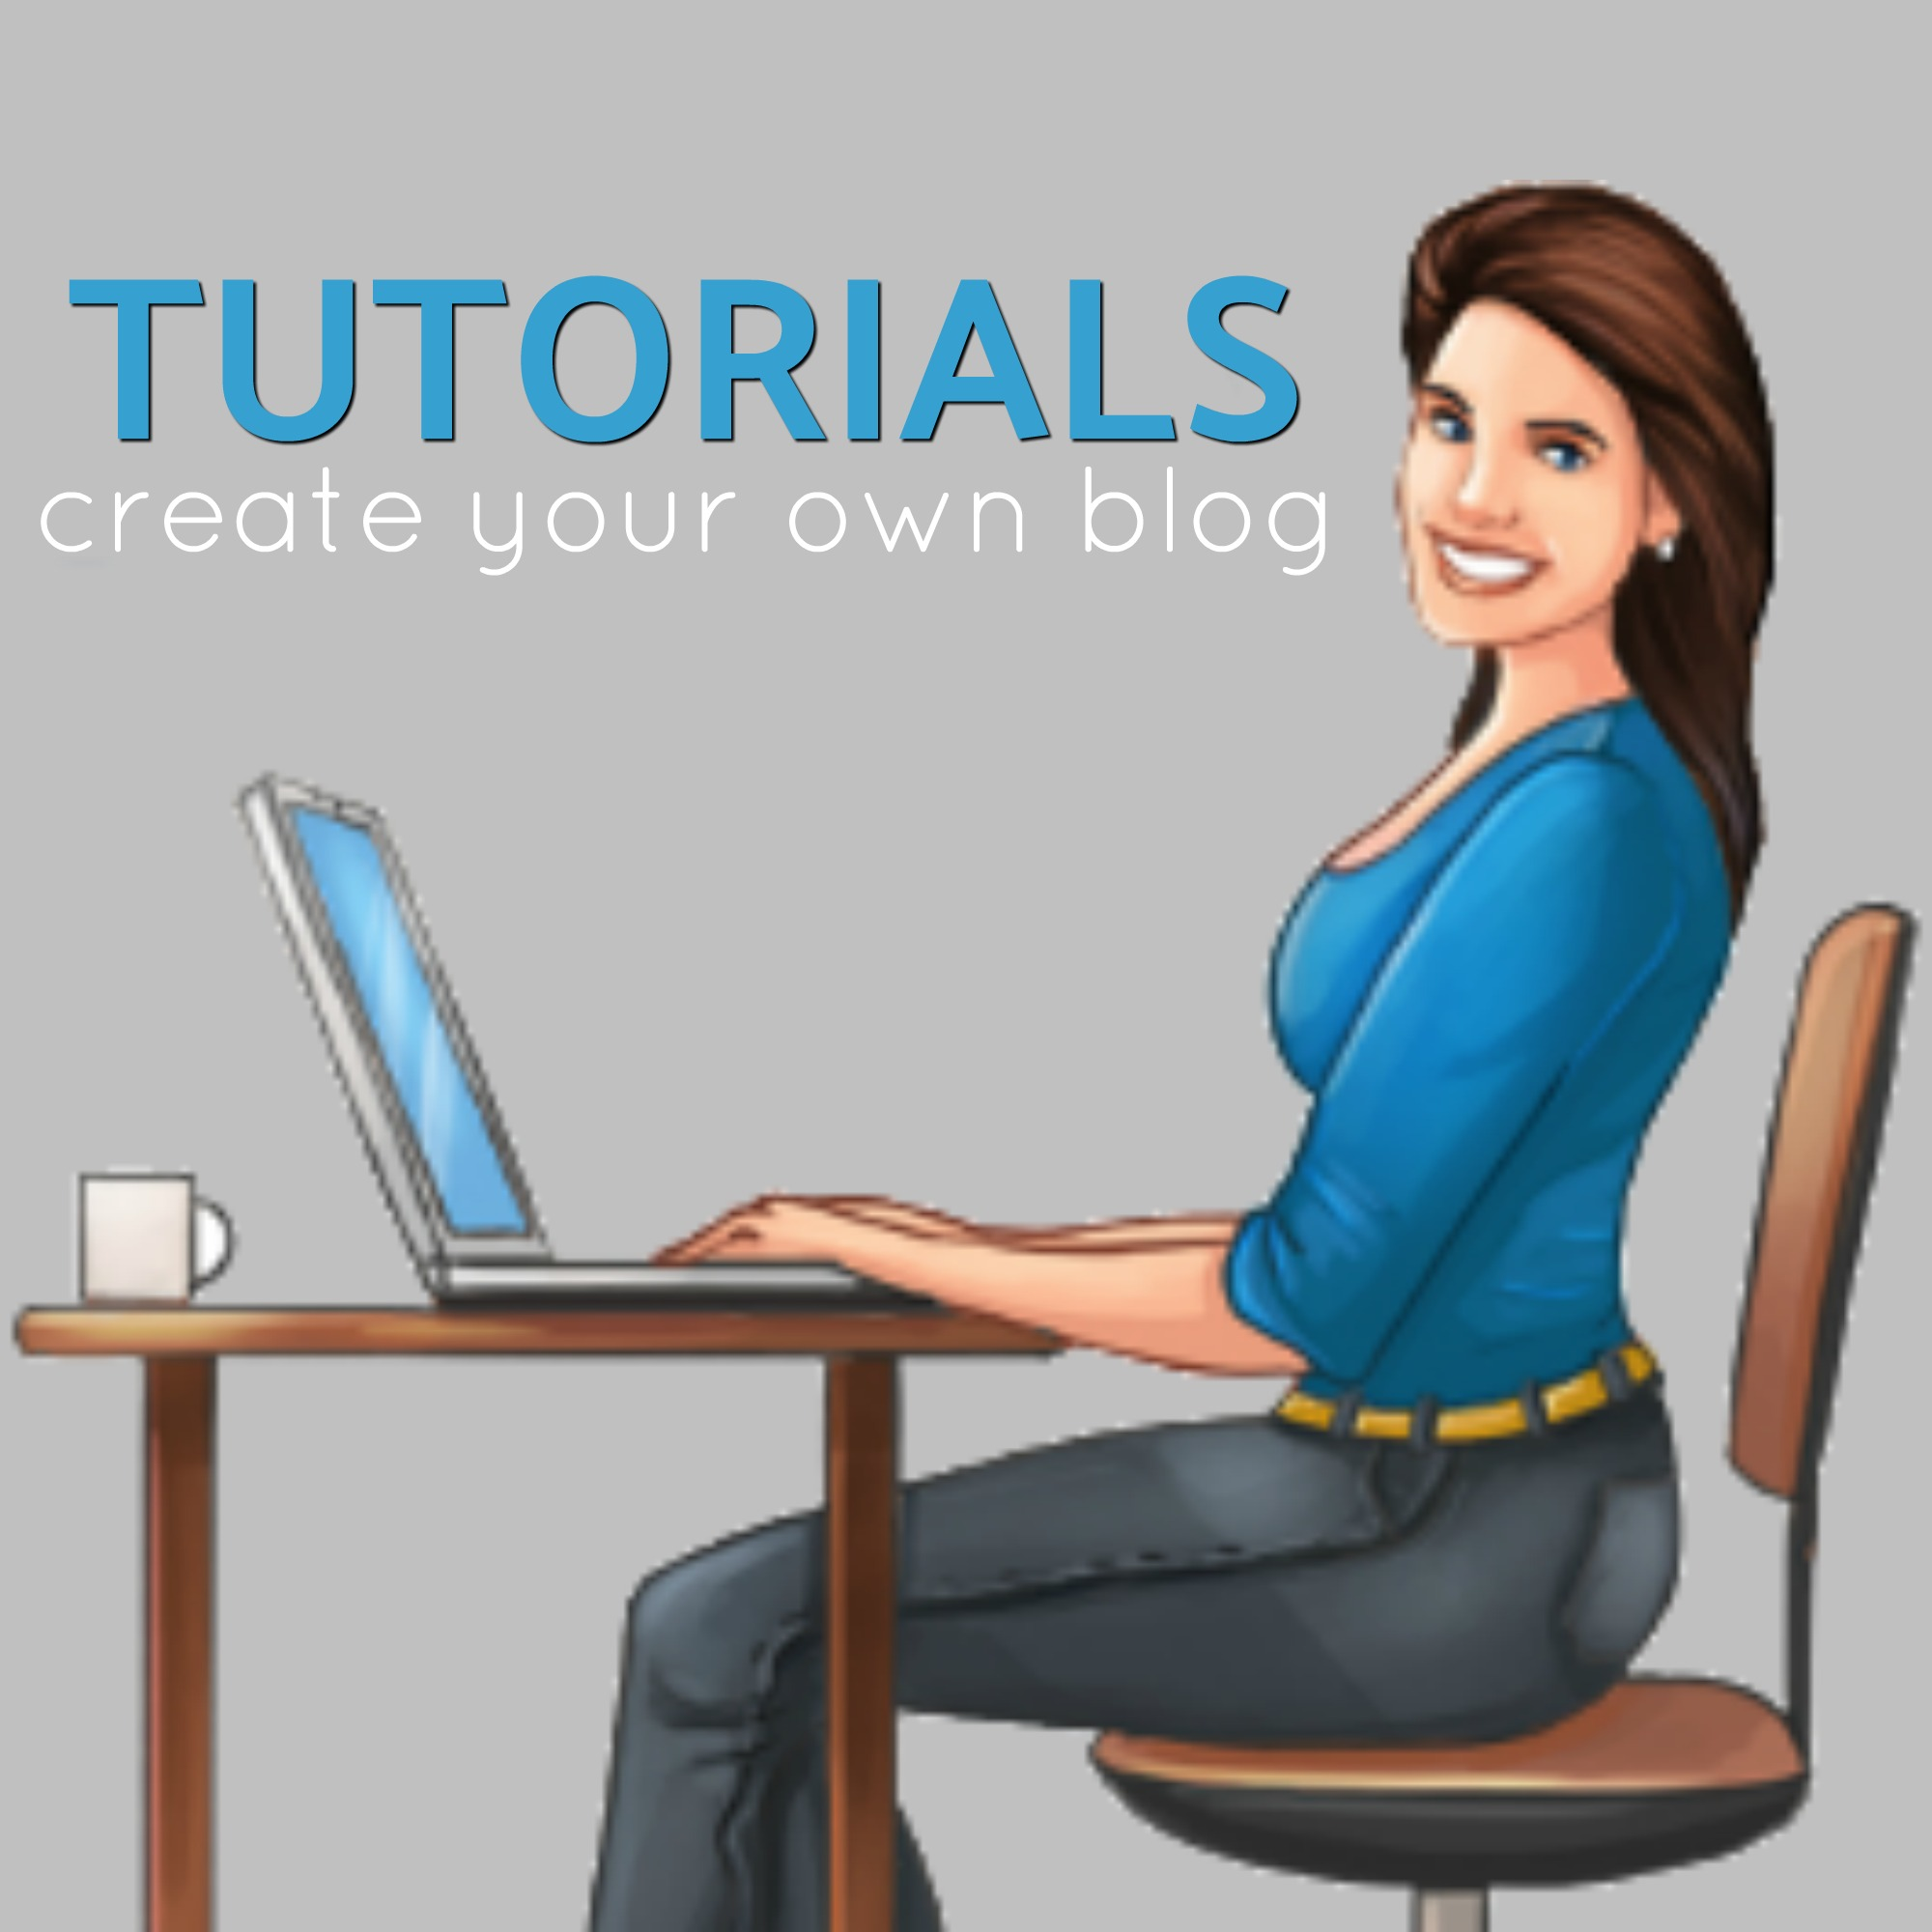 create your own blog tutorial logo